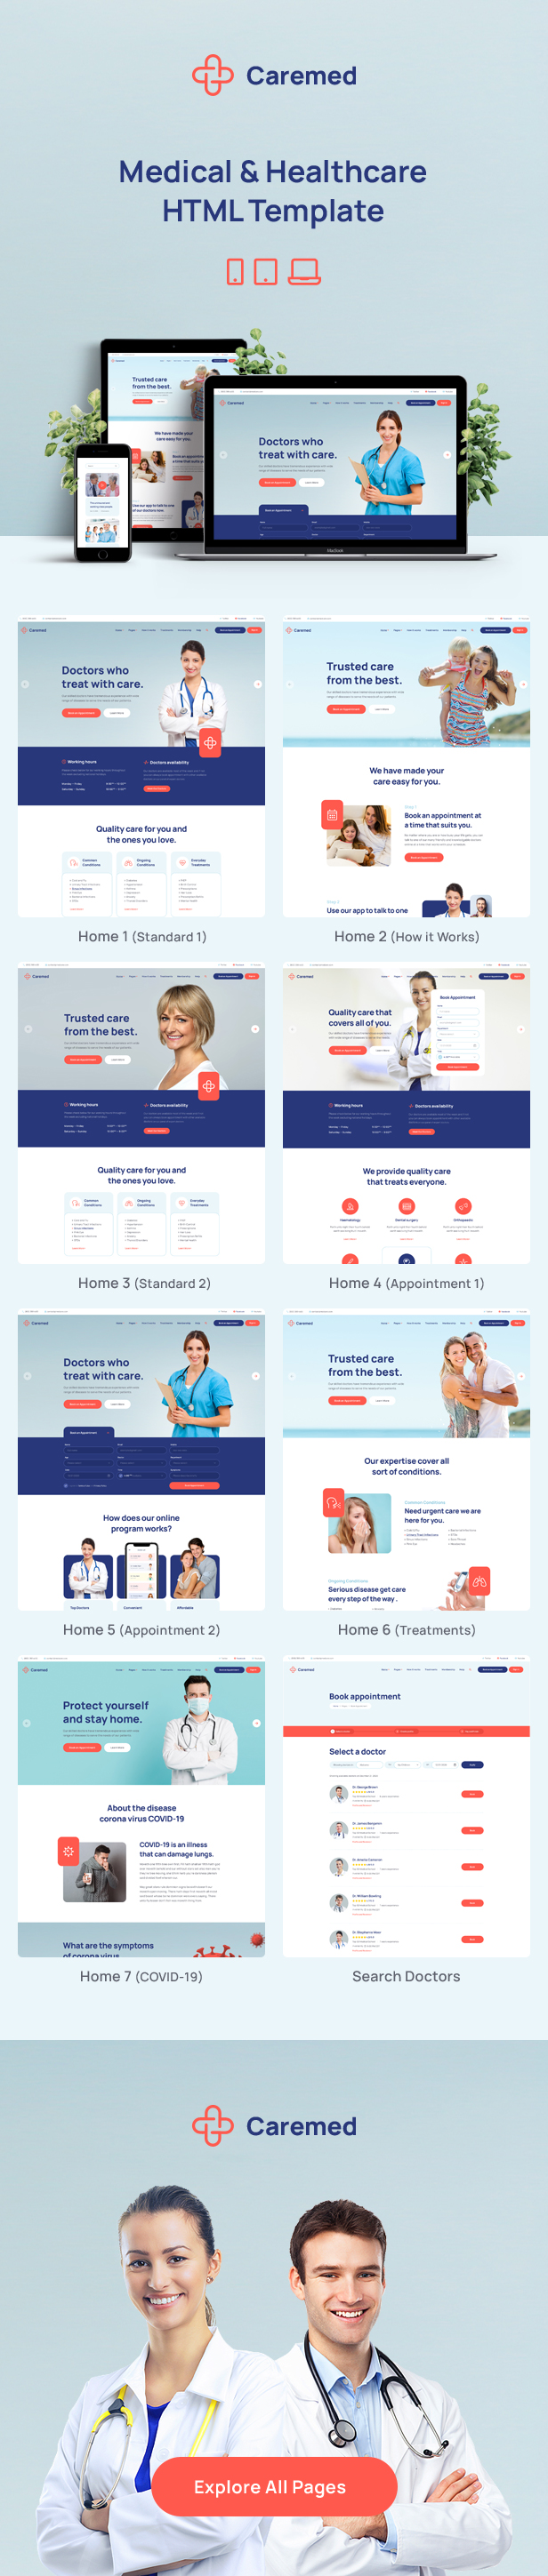 Caremed - Medical HTML Template - 1